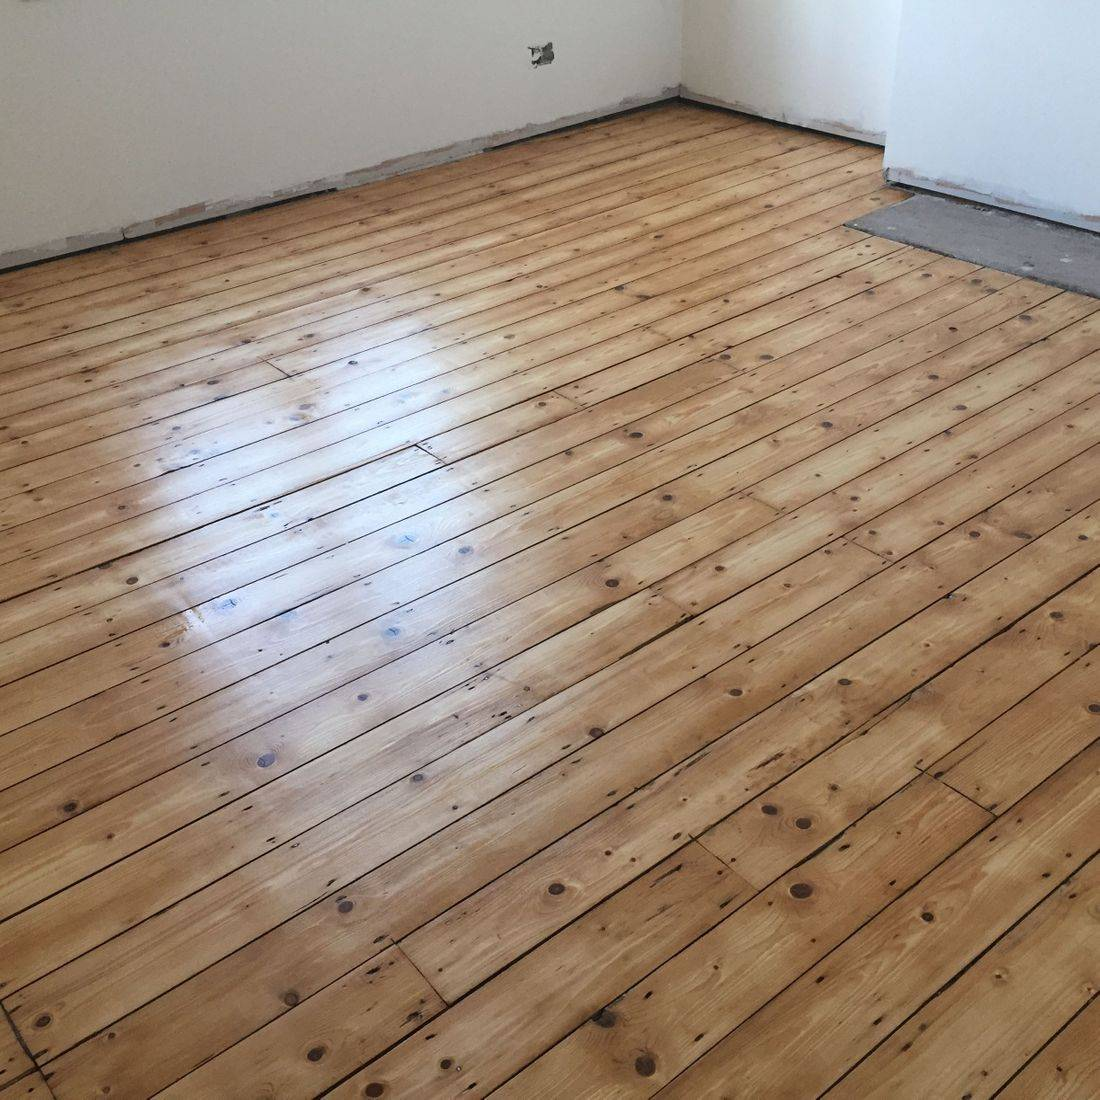 Wooden Floor restoration and renovation in Leicester